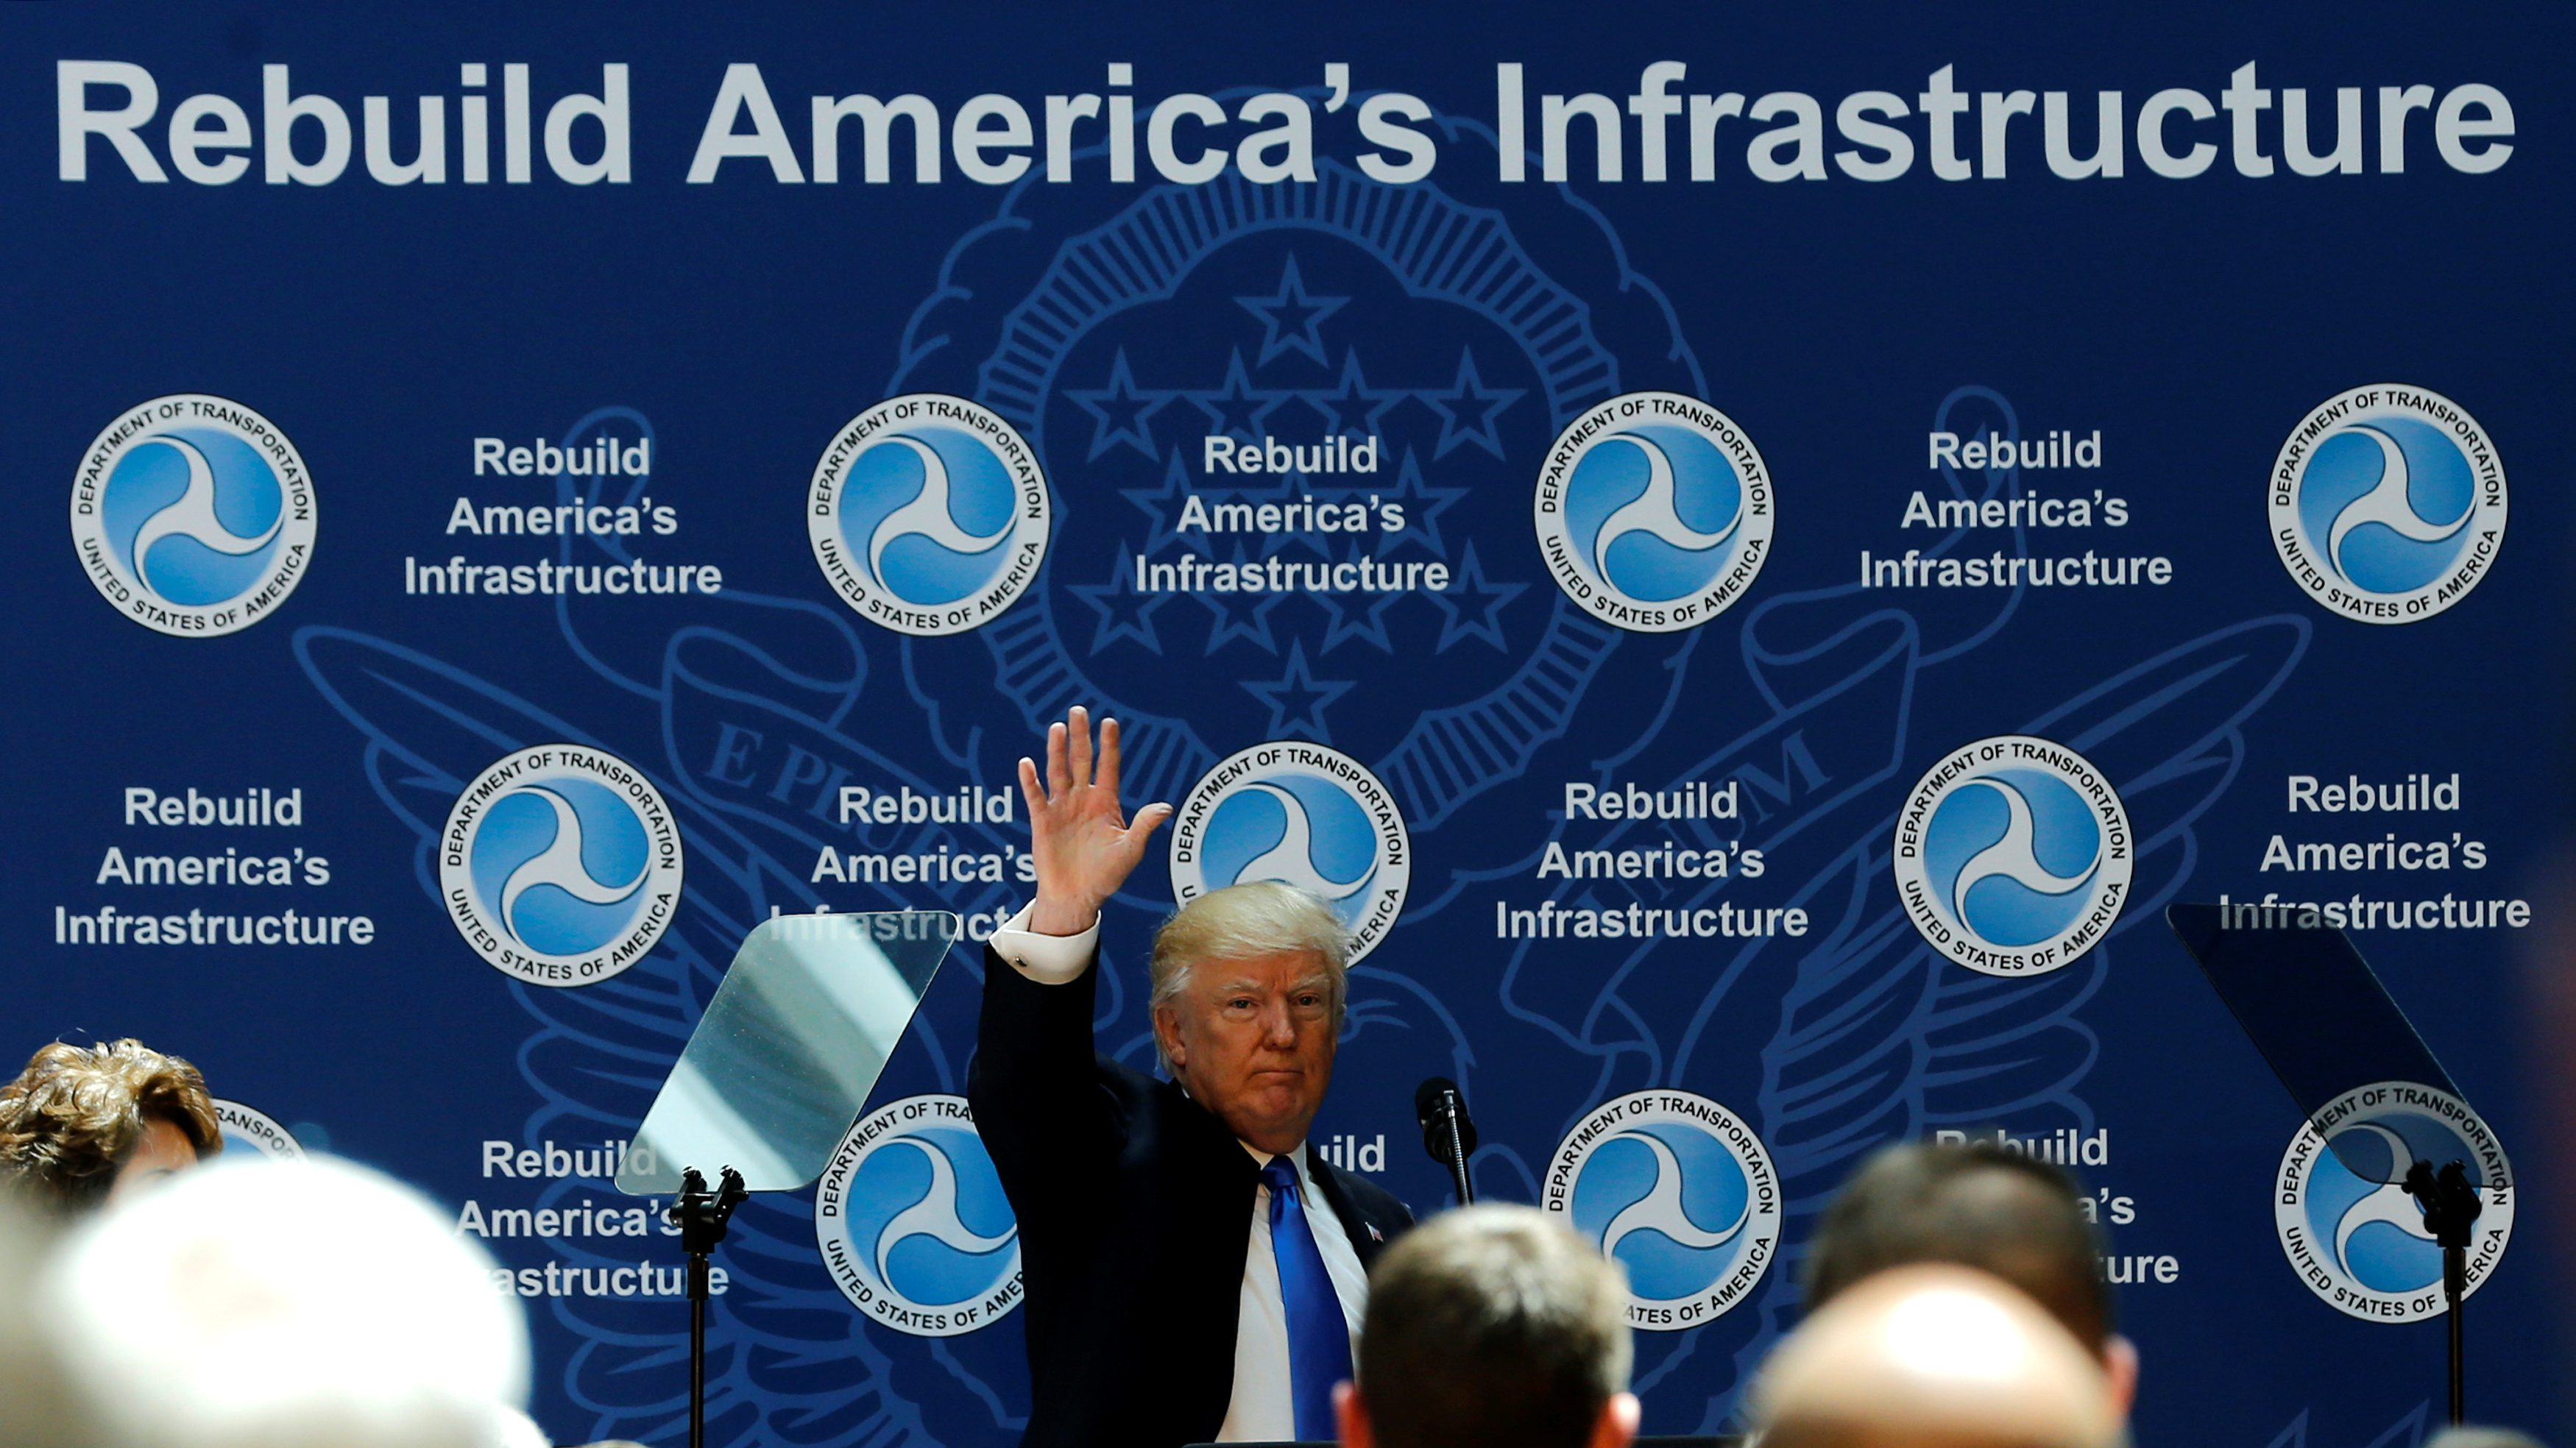 U.S. President Donald Trump concludes his remarks on infrastructure improvements, at the Department of Transportation in Washington, U.S.